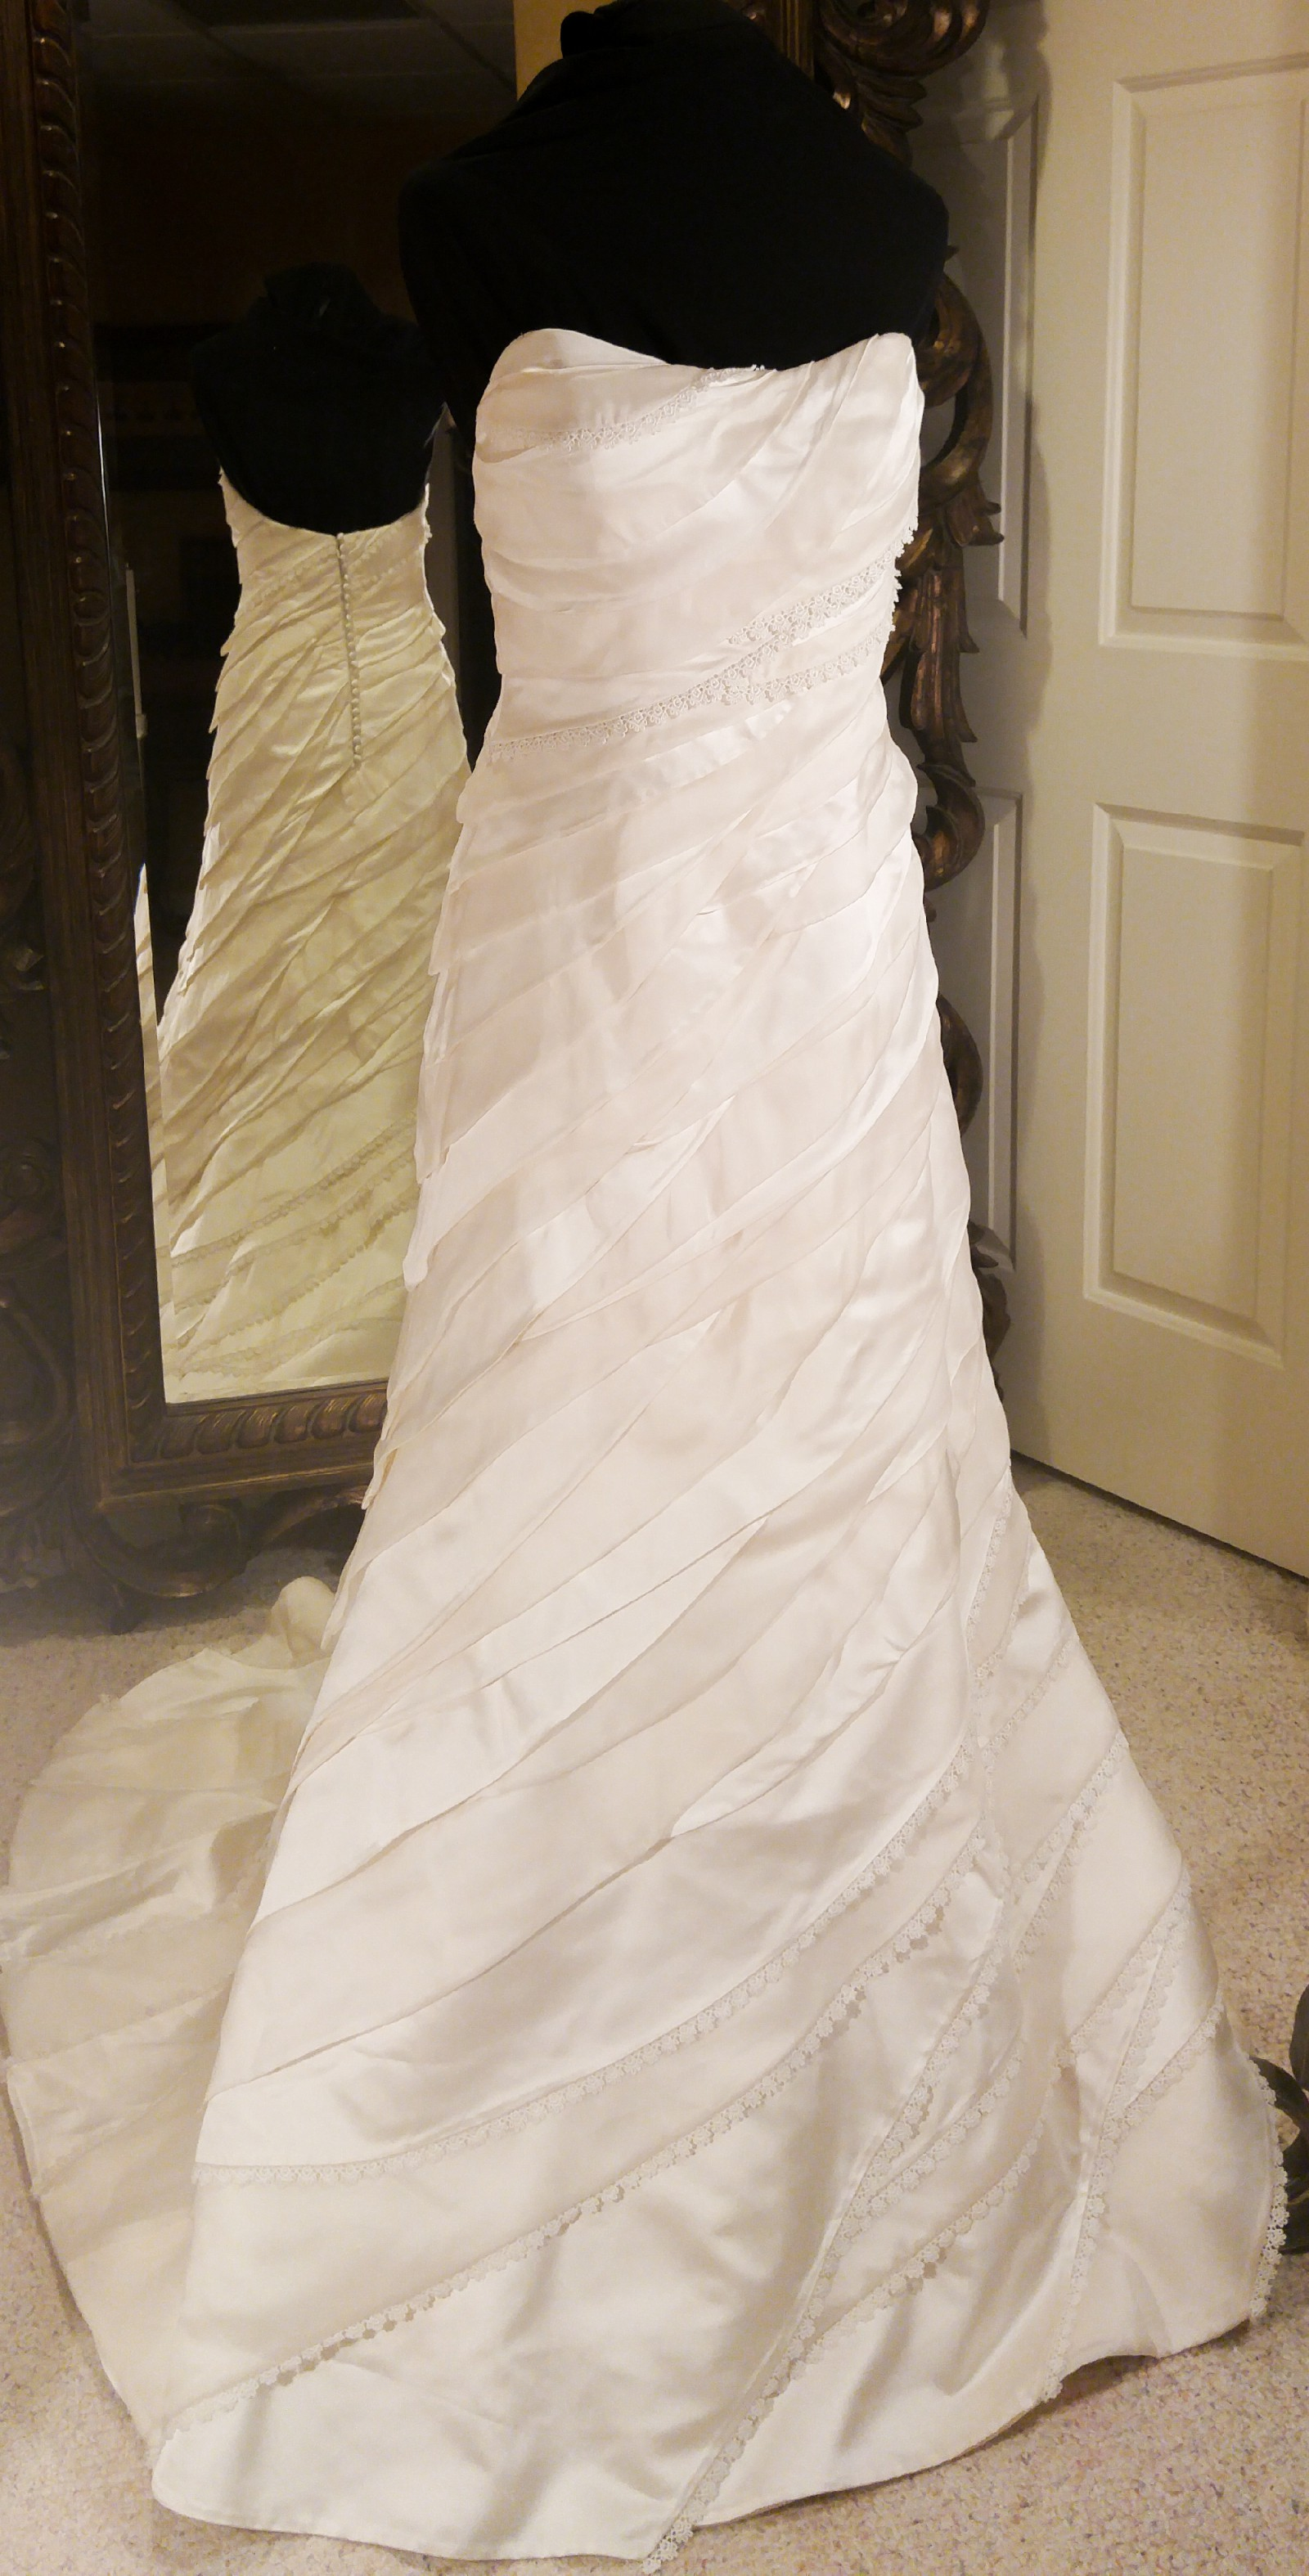 Matthew christopher 2907 new wedding dress on sale 95 off for Matthew christopher wedding dress prices